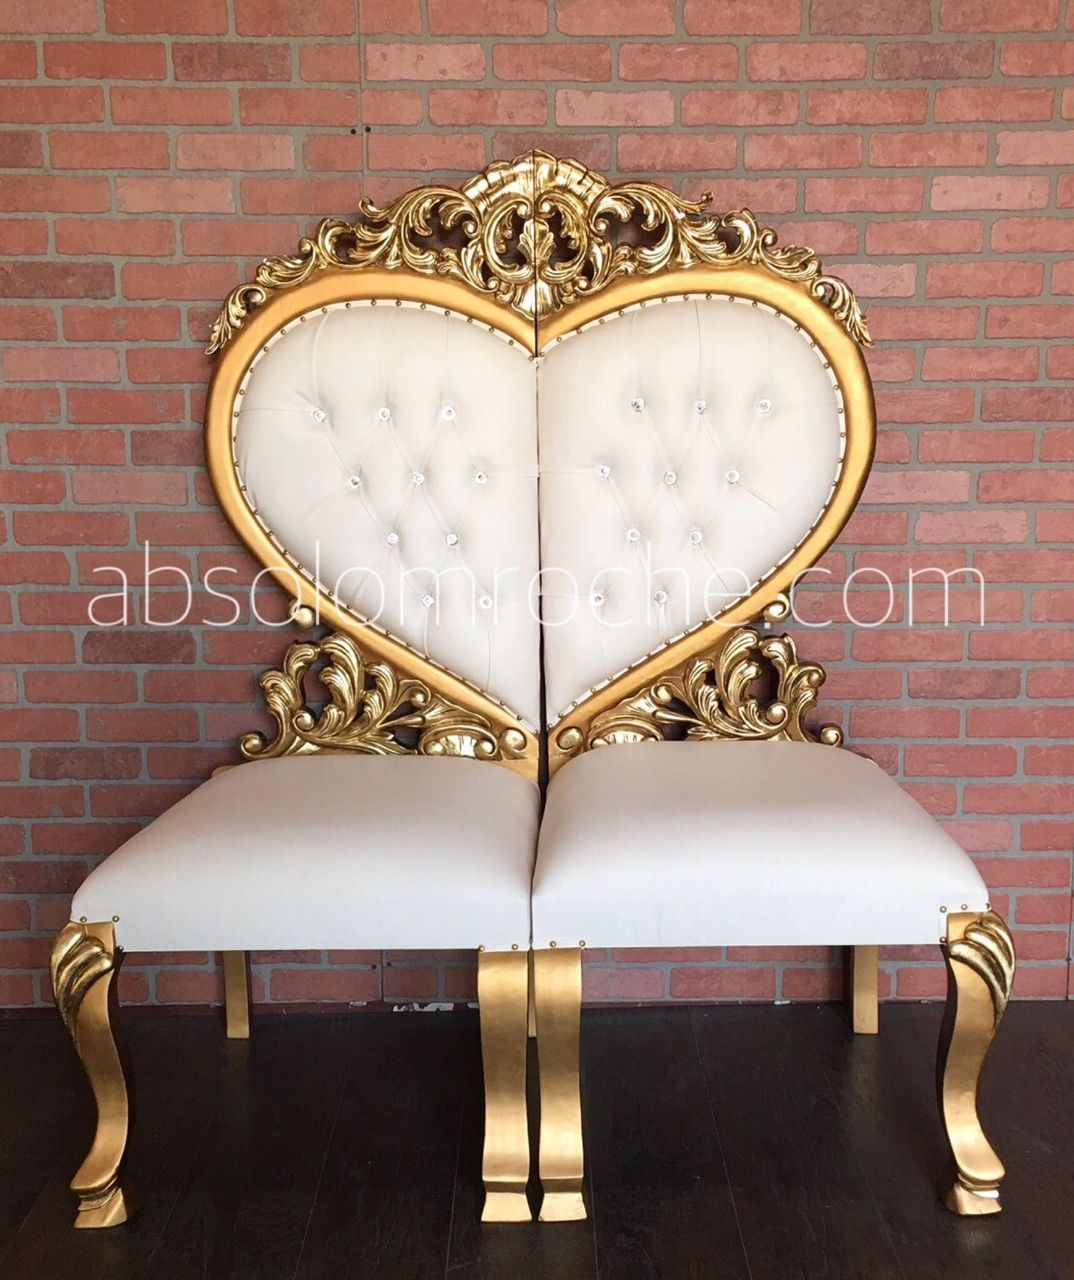 Htx Bridal Show Sale 50 Off Two Piece Heart Shaped Seating Gold White Bedroom Decor Lights Rococo Chair Victorian Sofa